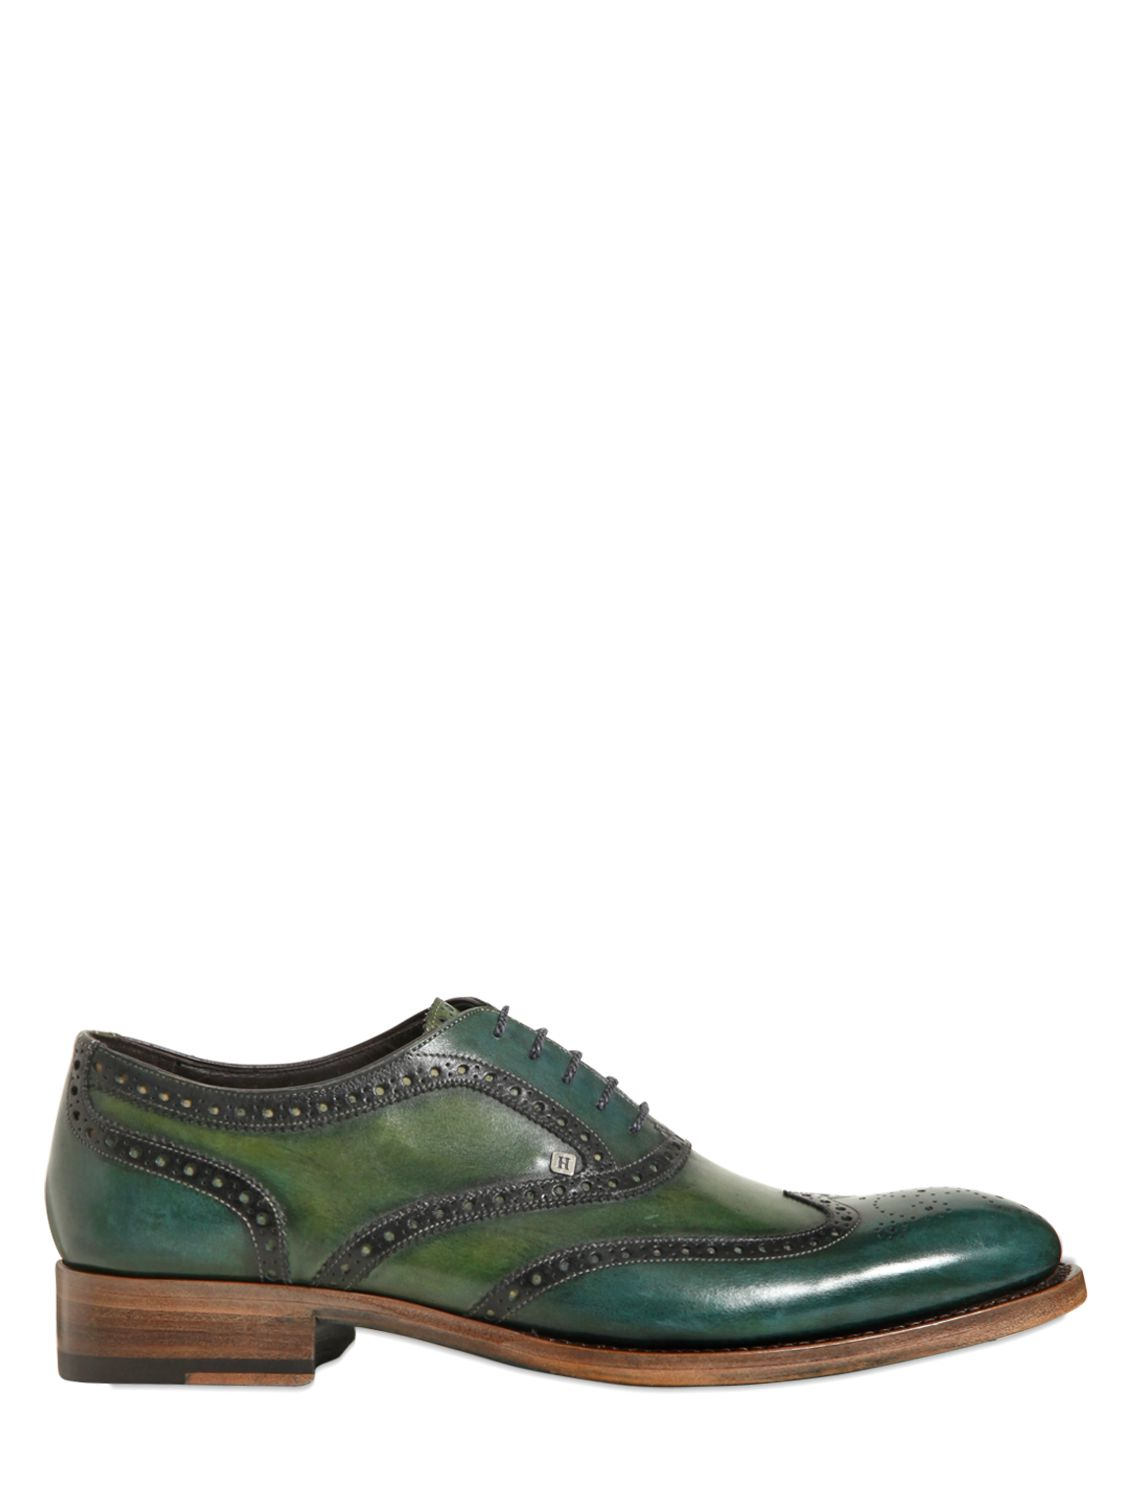 Lyst - Harris Leather Two Tone Brogued Oxford Shoes In Green For Men